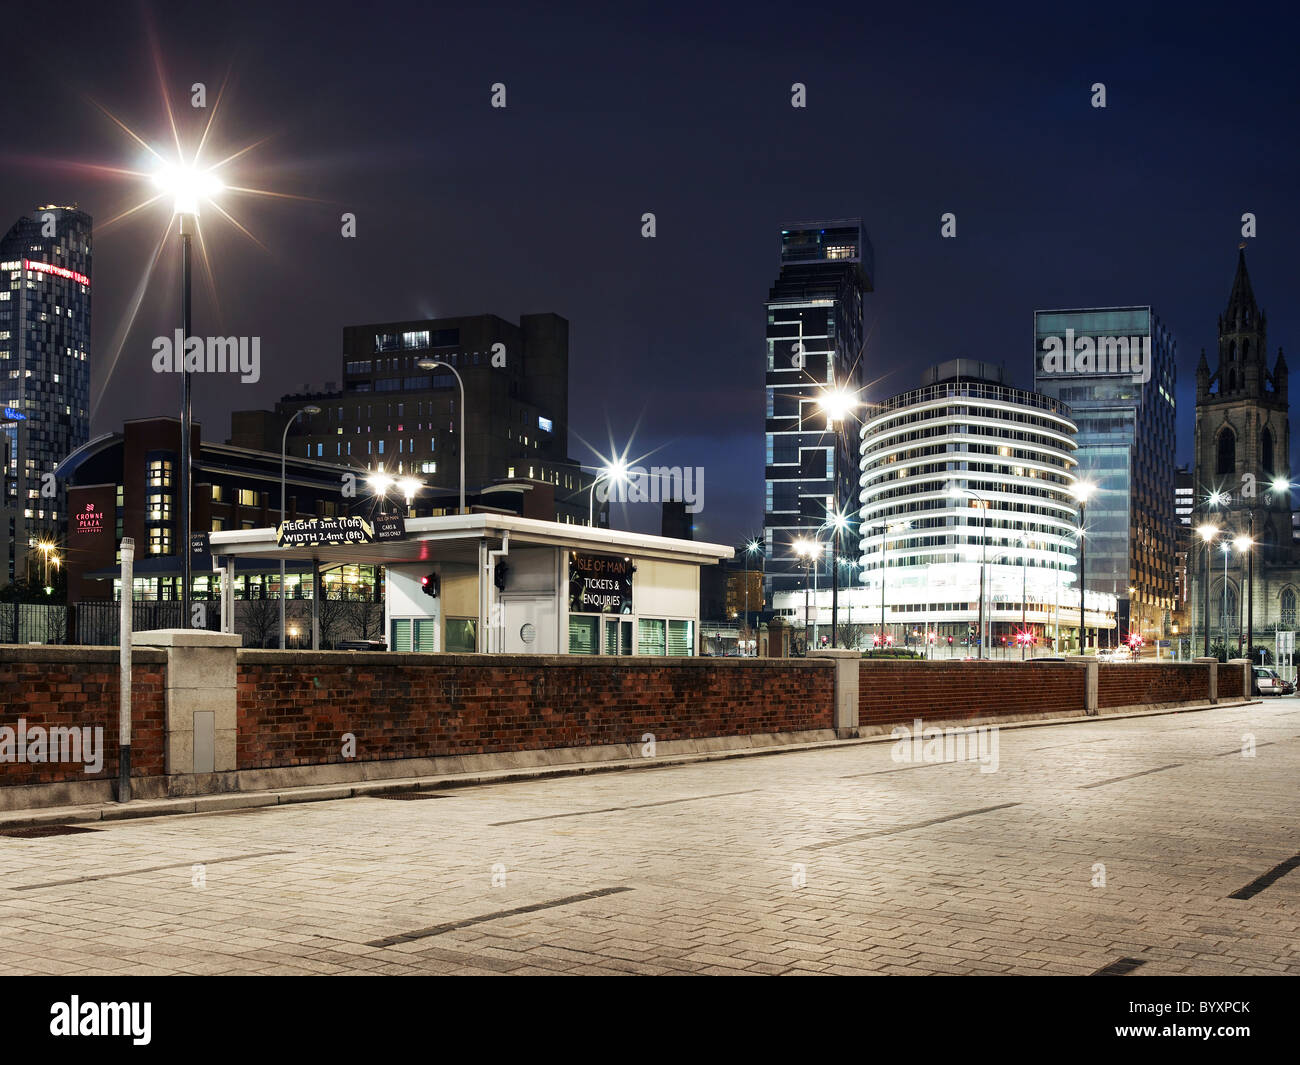 Image of liverpool skyline at night using long exposure, showing tall buildings and urban landscape from pier head - Stock Image